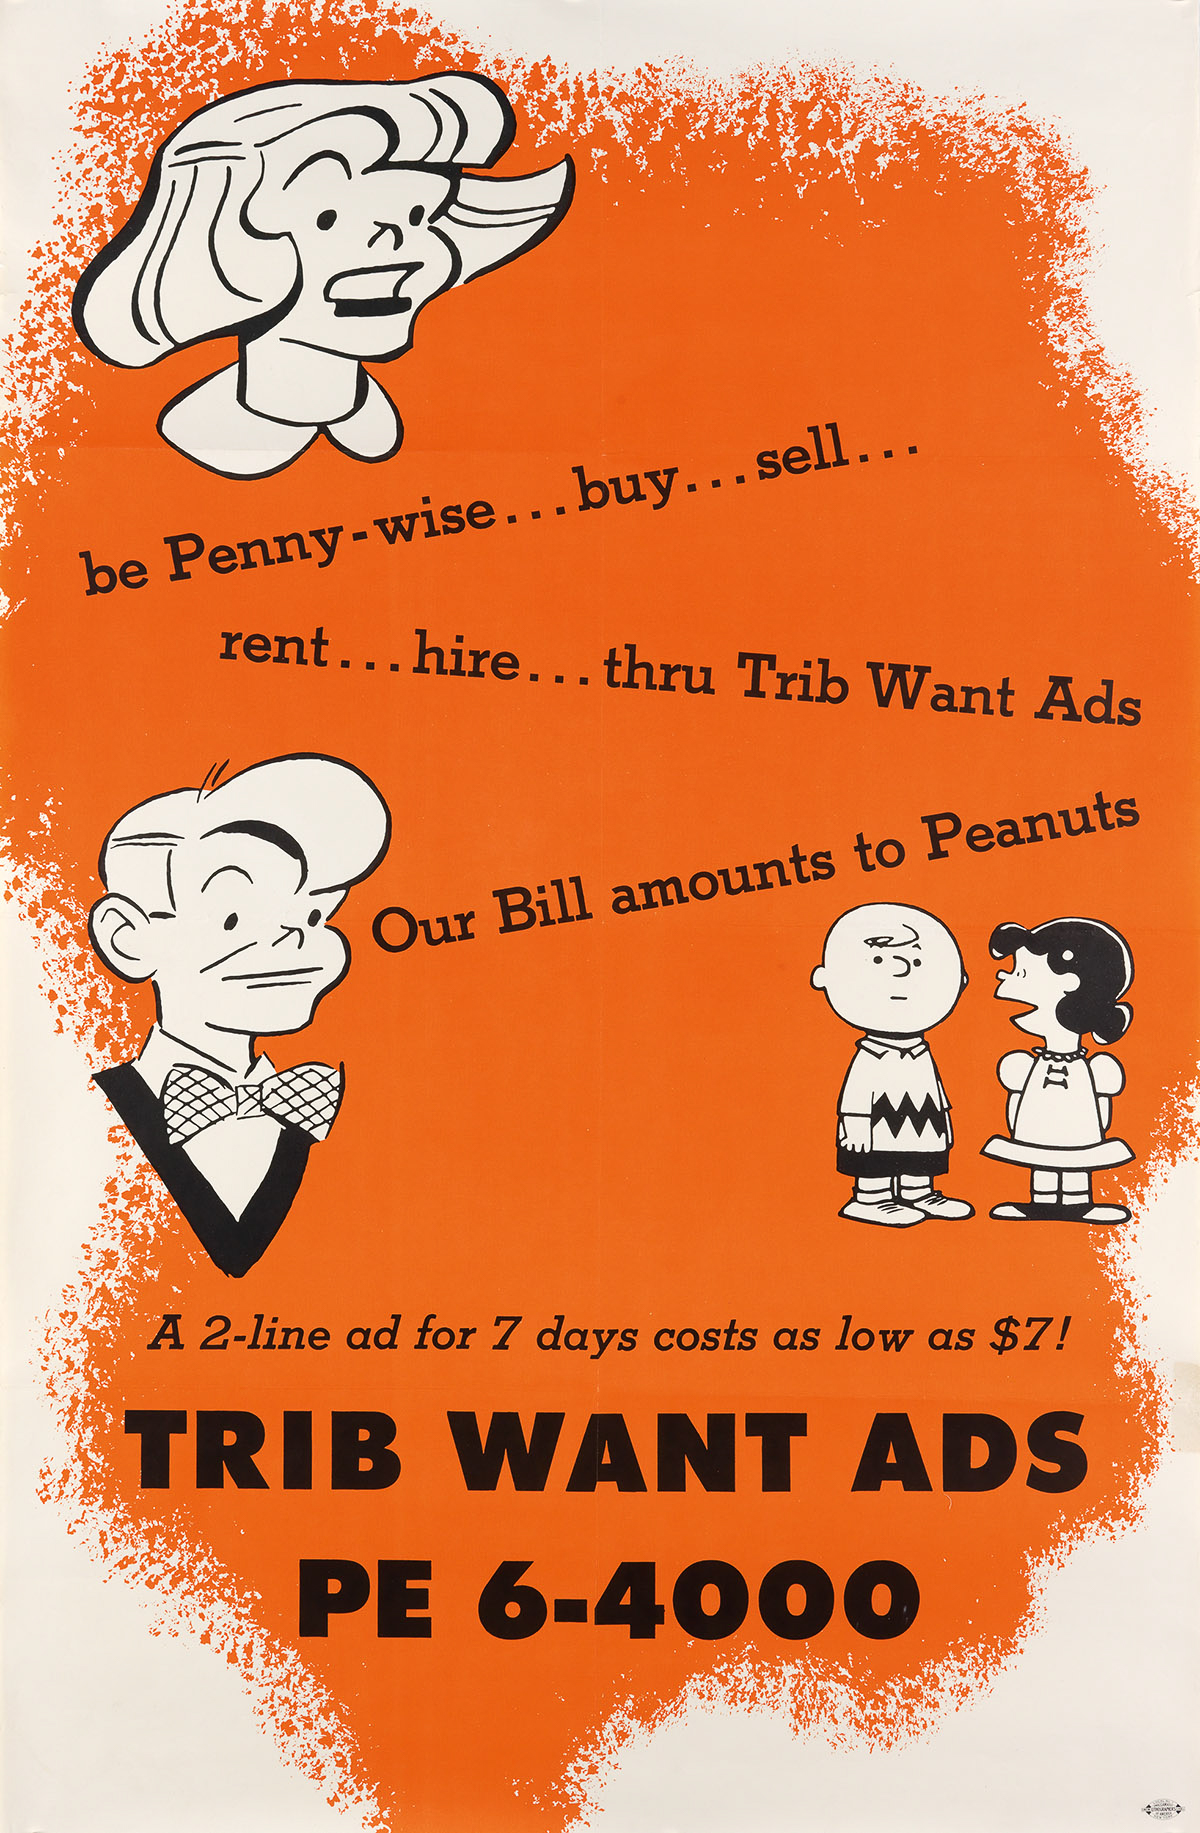 CHARLES-SCHULZ-(1922-2000)-BE-PENNY---WISE--OUR-BILL-AMOUNTS